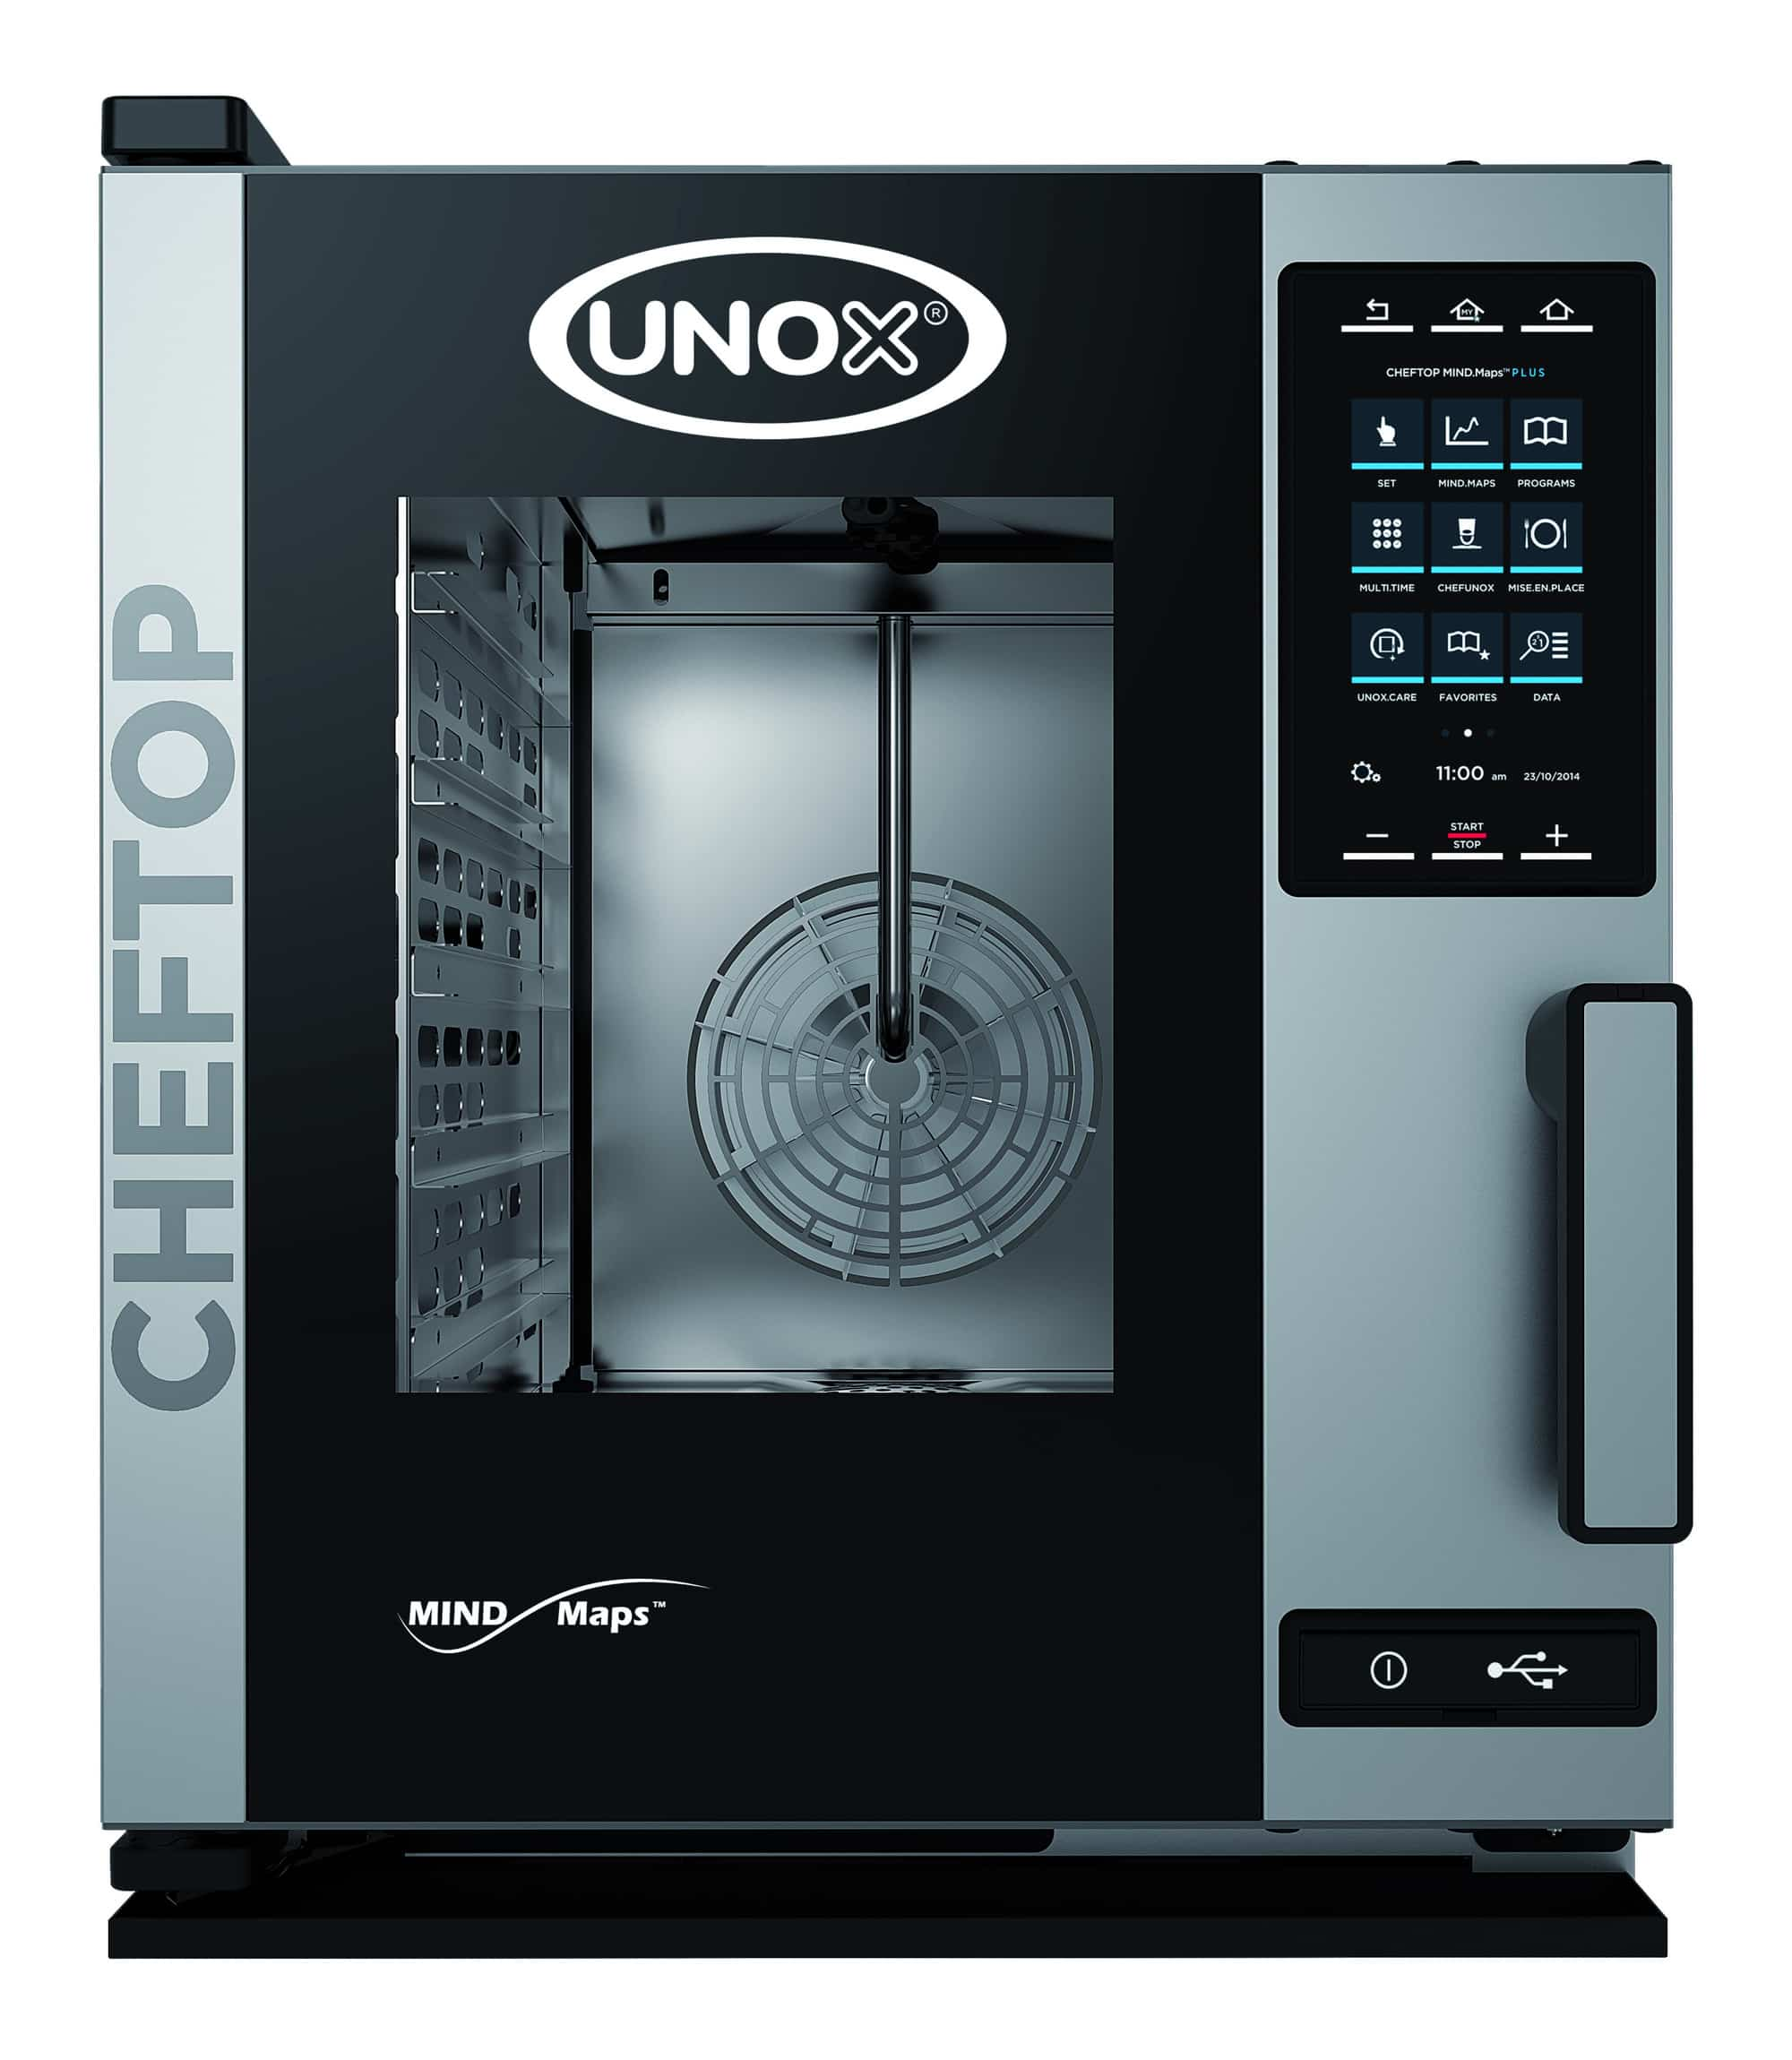 Unox ChefTop Mind.Maps 5 GN 1/1 One Electric